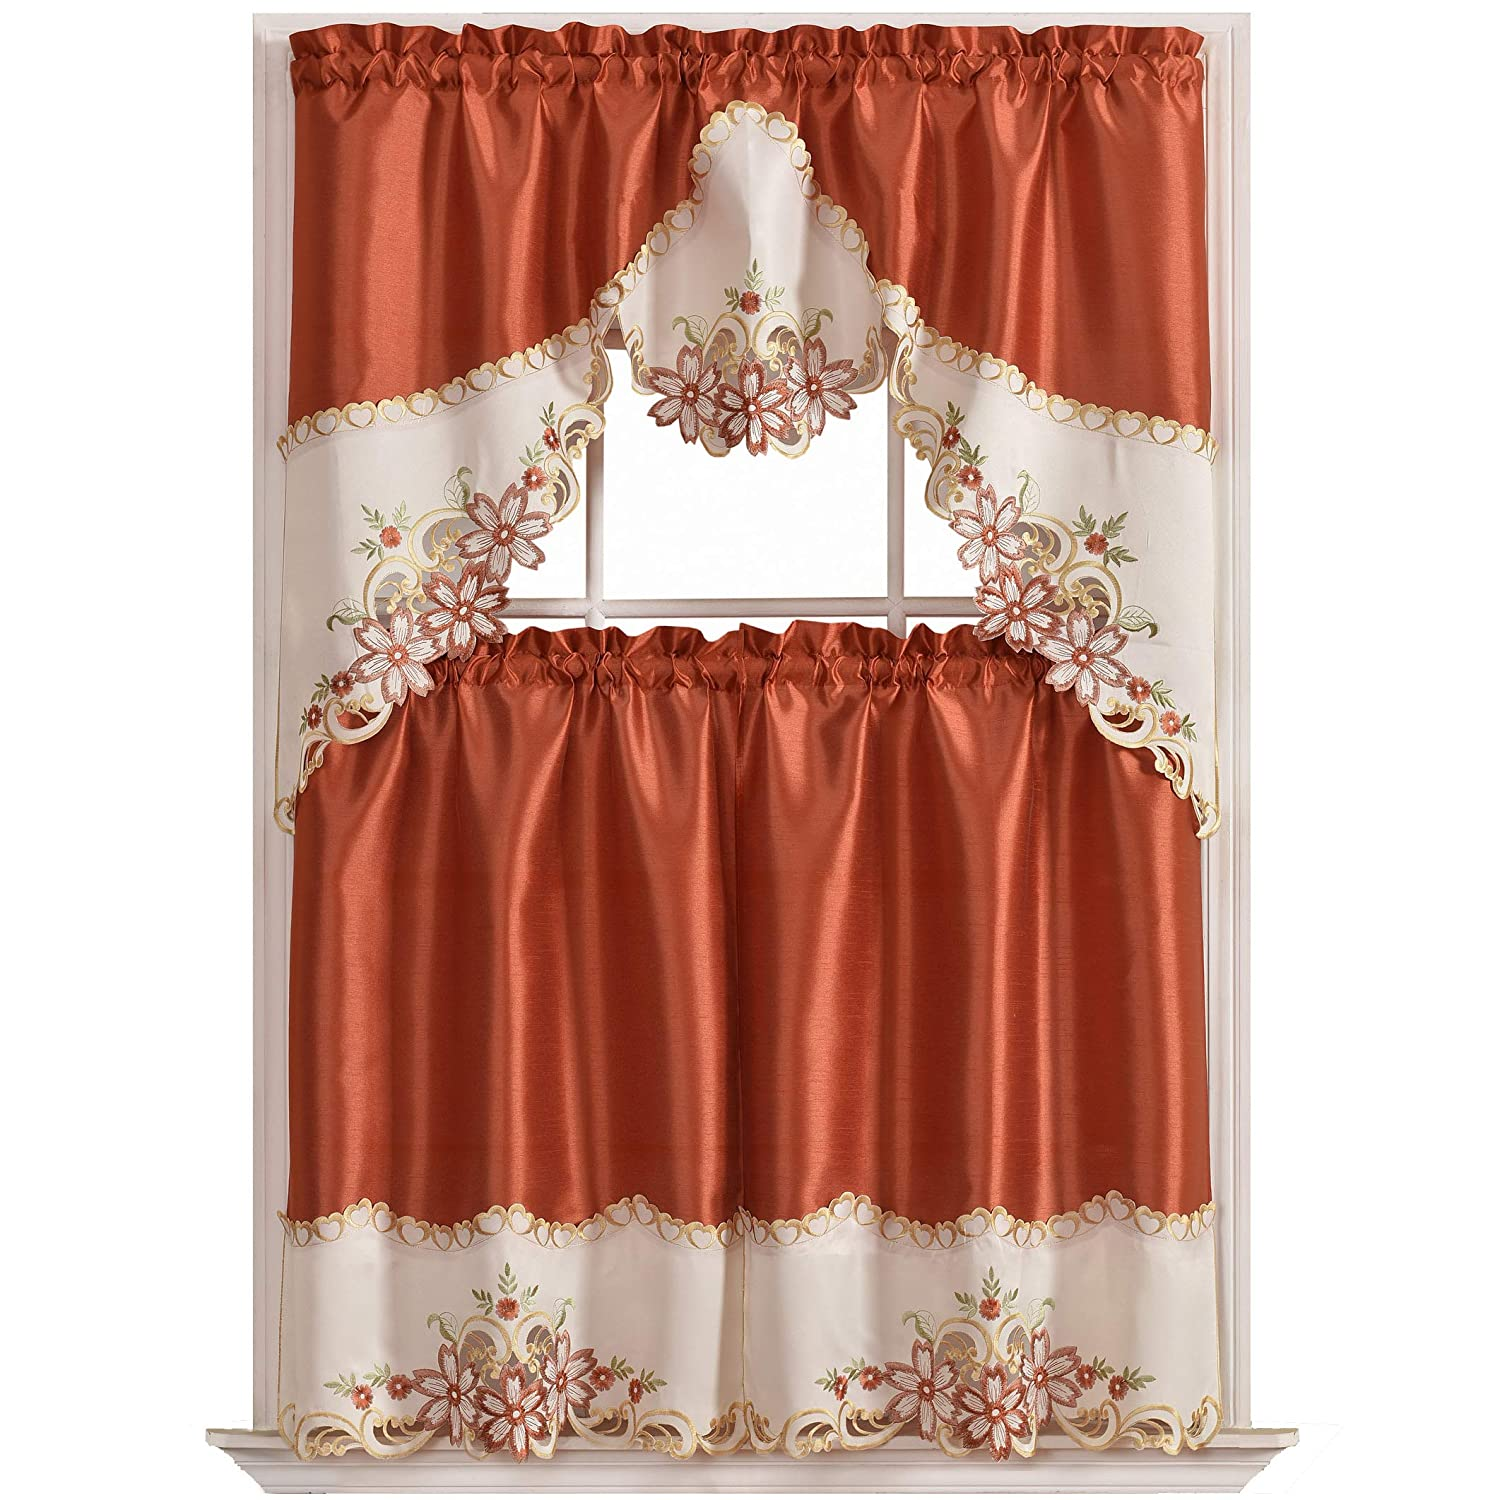 GOHD Golden Ocean Home Decor Arch Floral Kitchen Cafe Curtain Set. Window Treatment Set for Small Windows. Nice Matching Color Floral Embroidery on Border with cutworks (Rust)